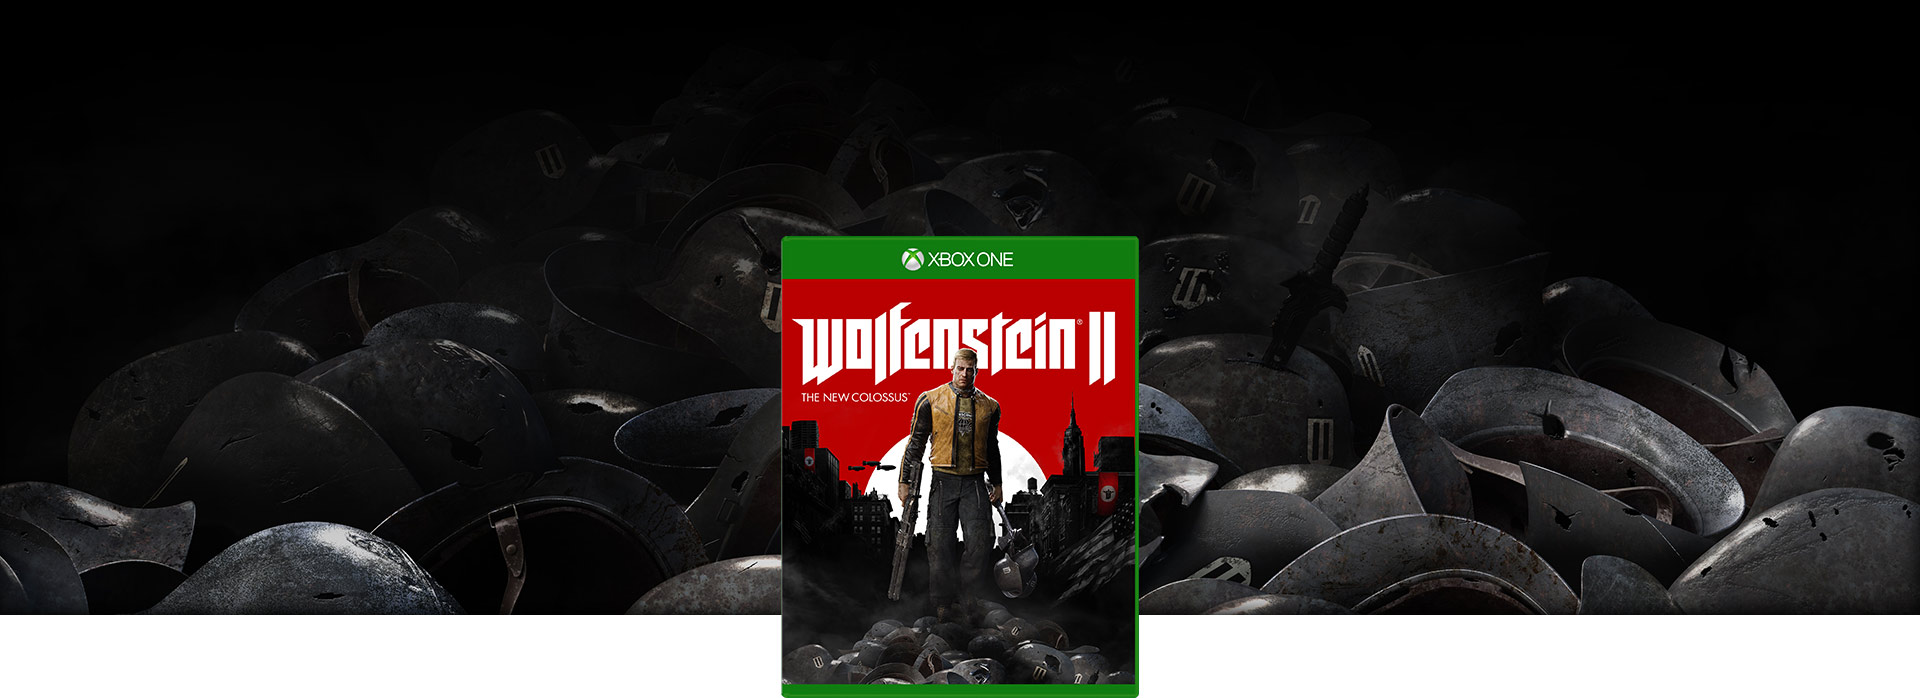 Wolfenstein II: The New Colossus boxshot – background shot of a pile of German army helmets